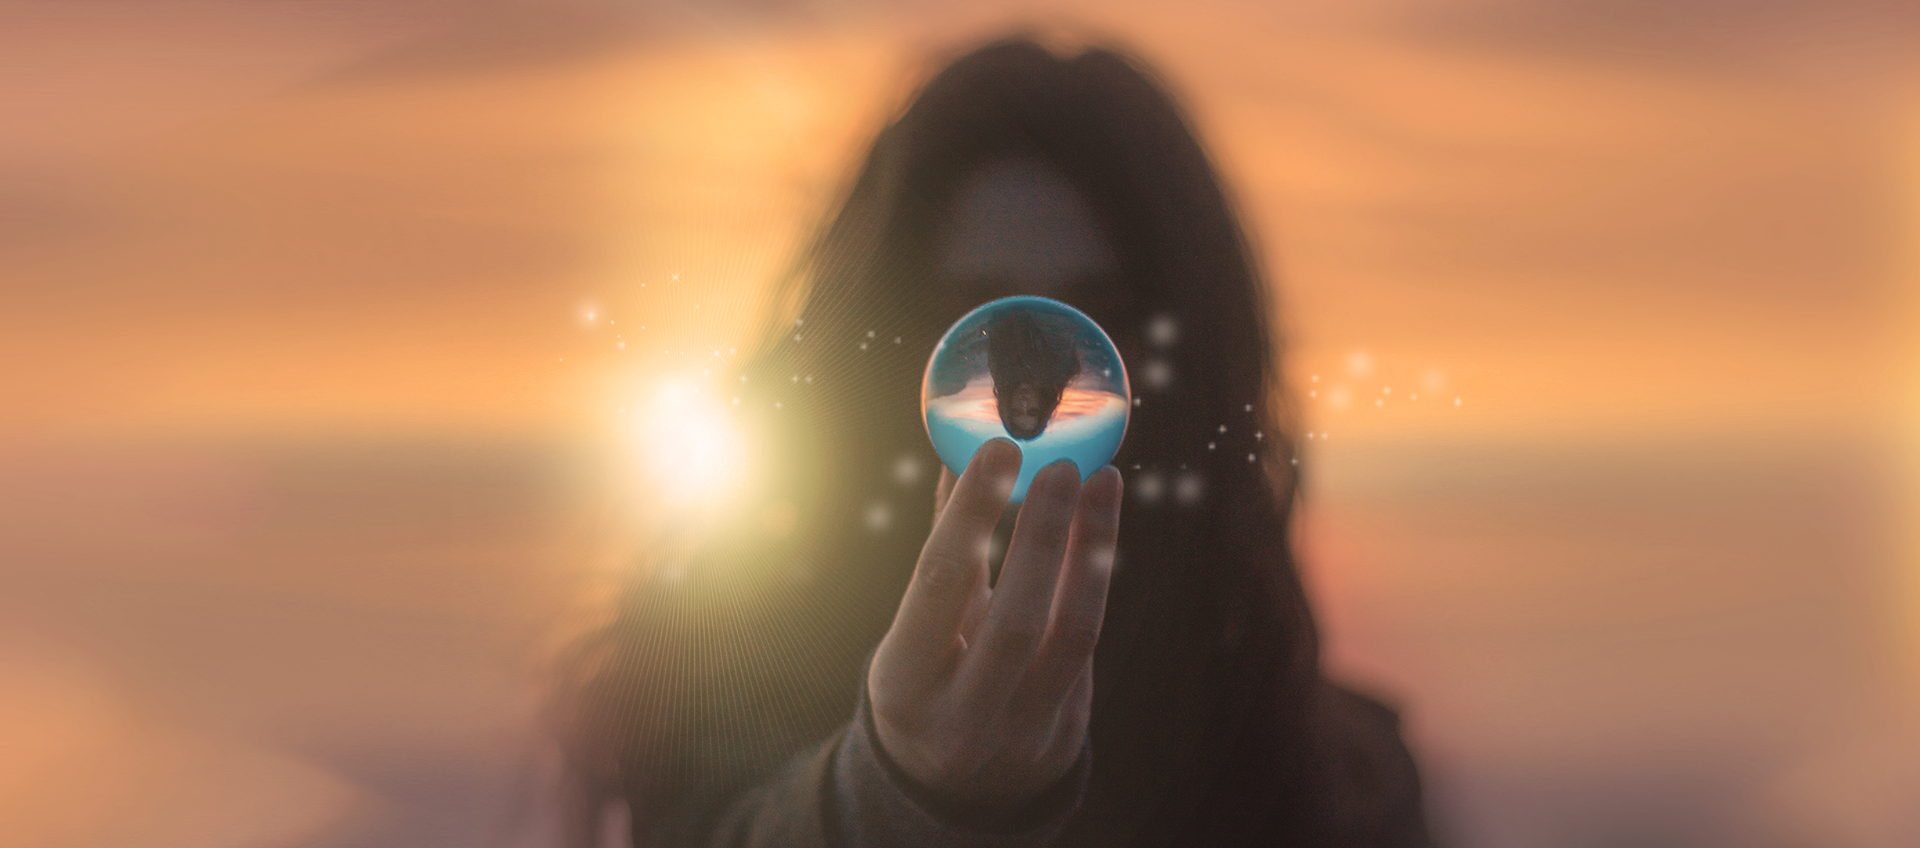 Psychic Readings & Predictions: Can You Change the Outcome